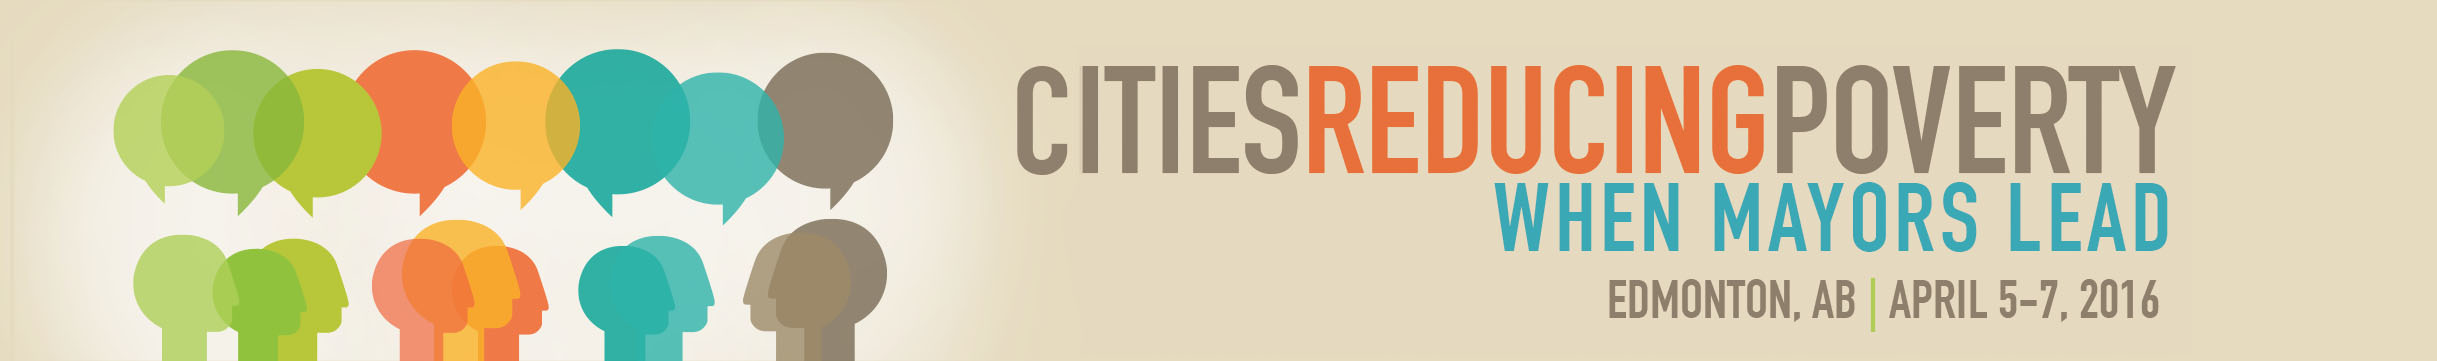 Cities Reducing Poverty: When Mayors Lead